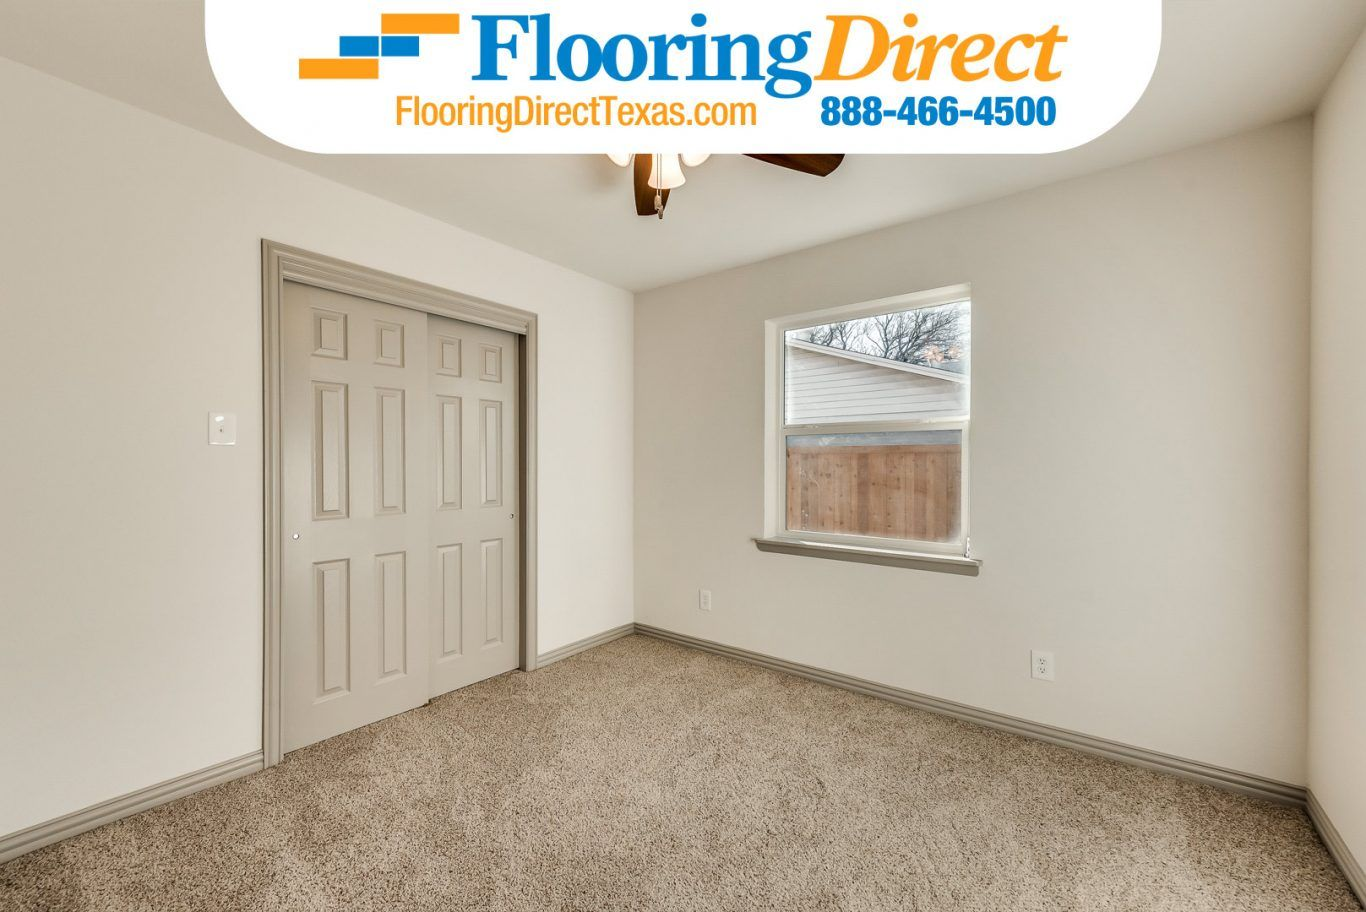 Dfw Area Home Owners And Businesses Can Rely On Flooring Direct For All Their Flooring Installation Needs Not Only Do We Flooring House Flooring Floors Direct